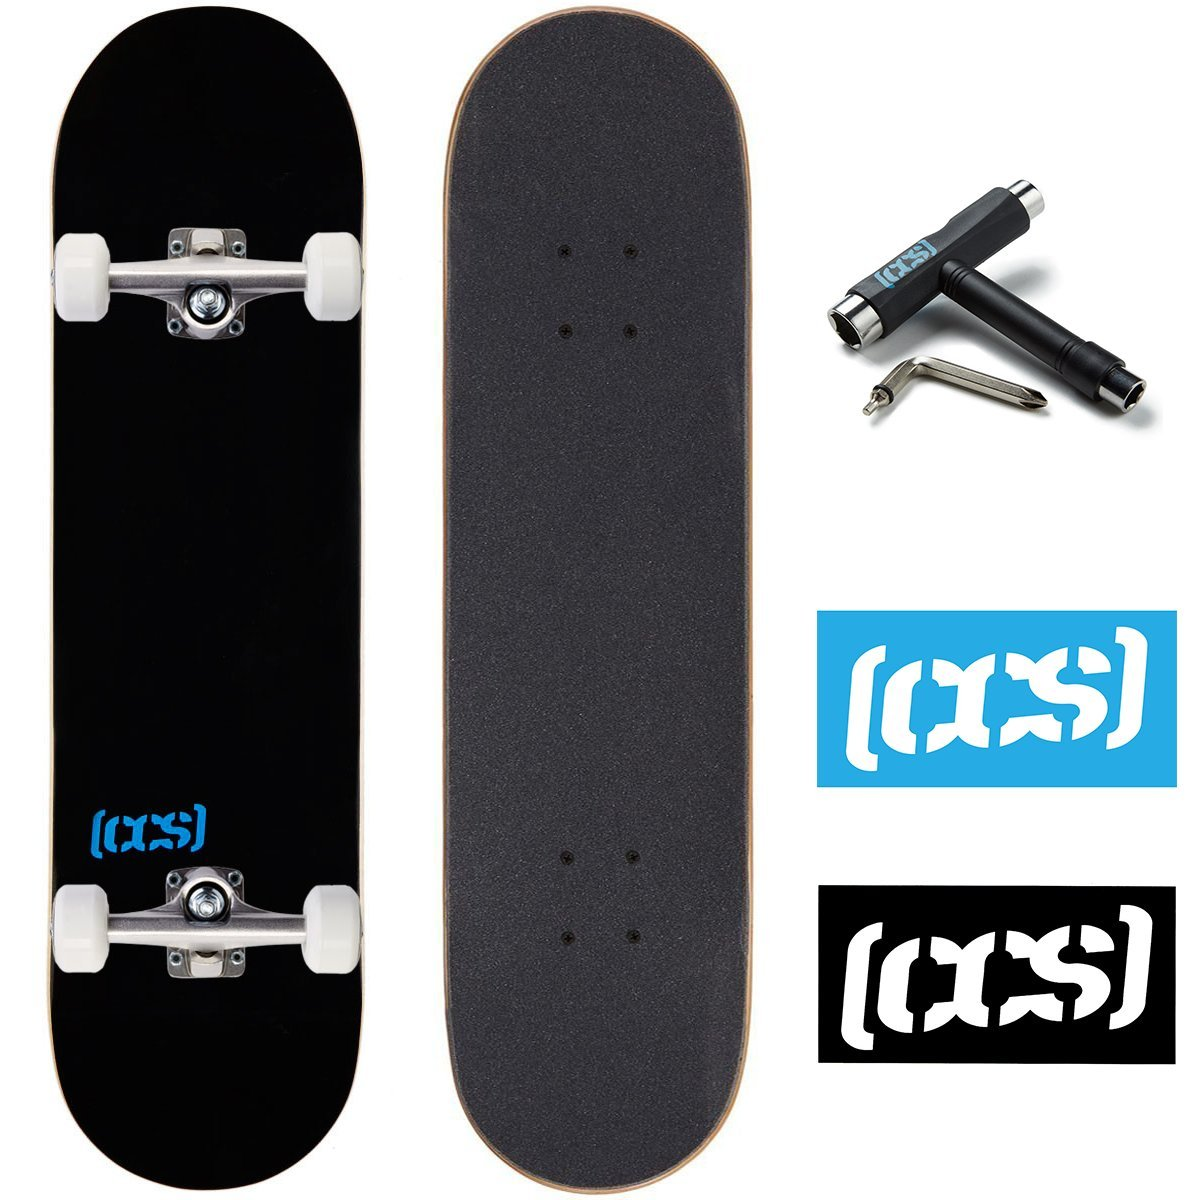 CCS Skateboard Complete - Color Logo and Natural Wood - Fully Assembled - Includes Skateboard Tool and Stickers (Black, 7.0'' (Mini/Kid's Size))